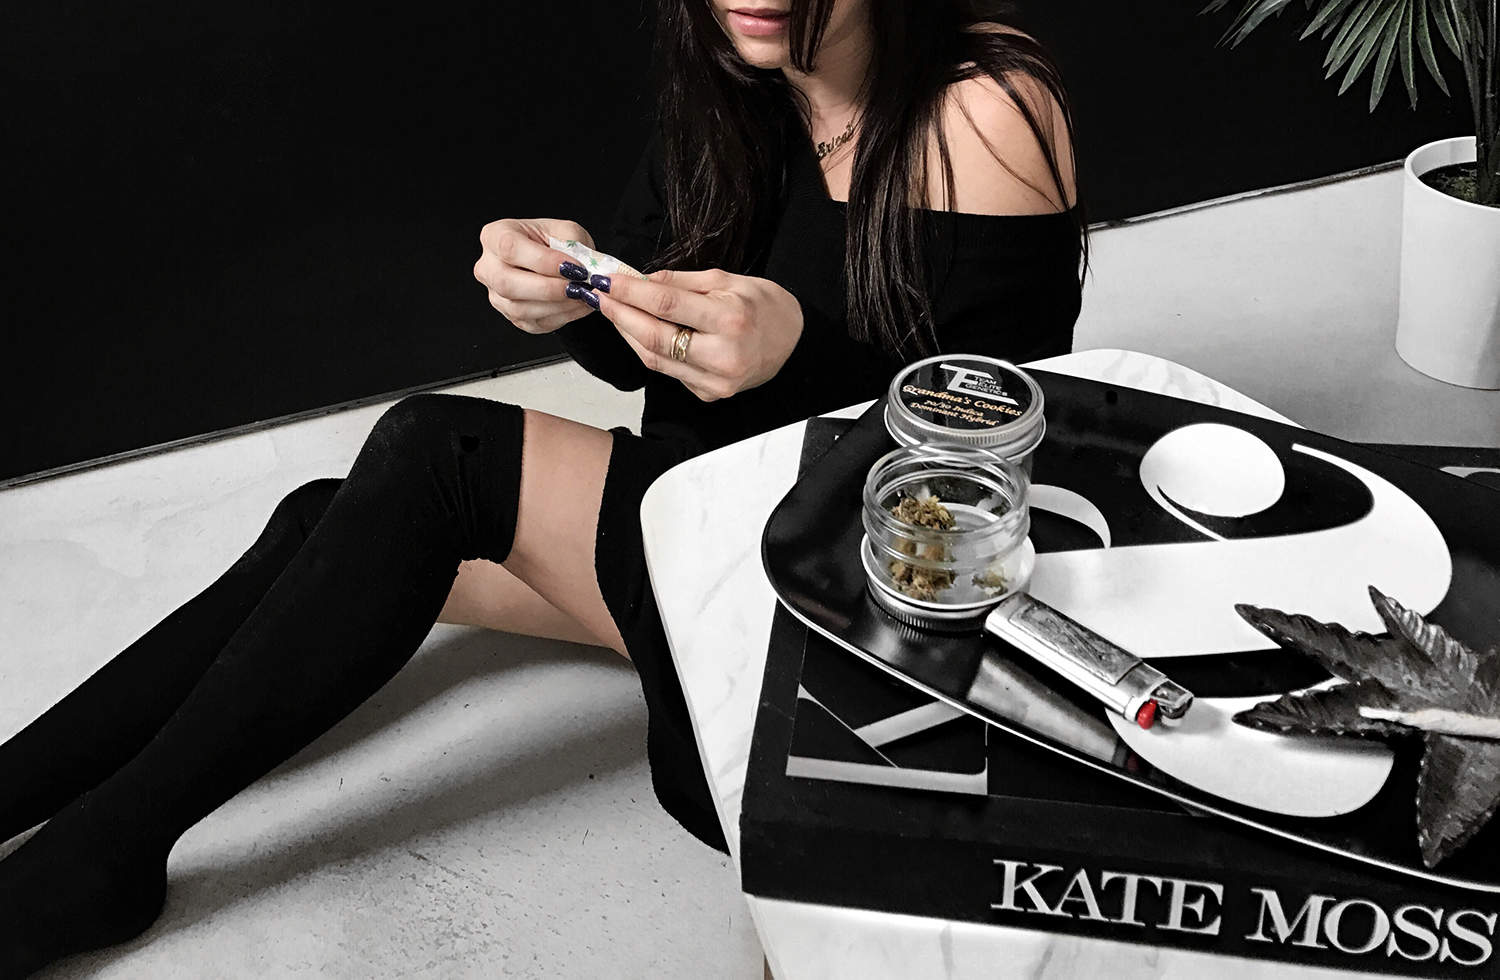 fashionlush, mary jane diaries, women and weed